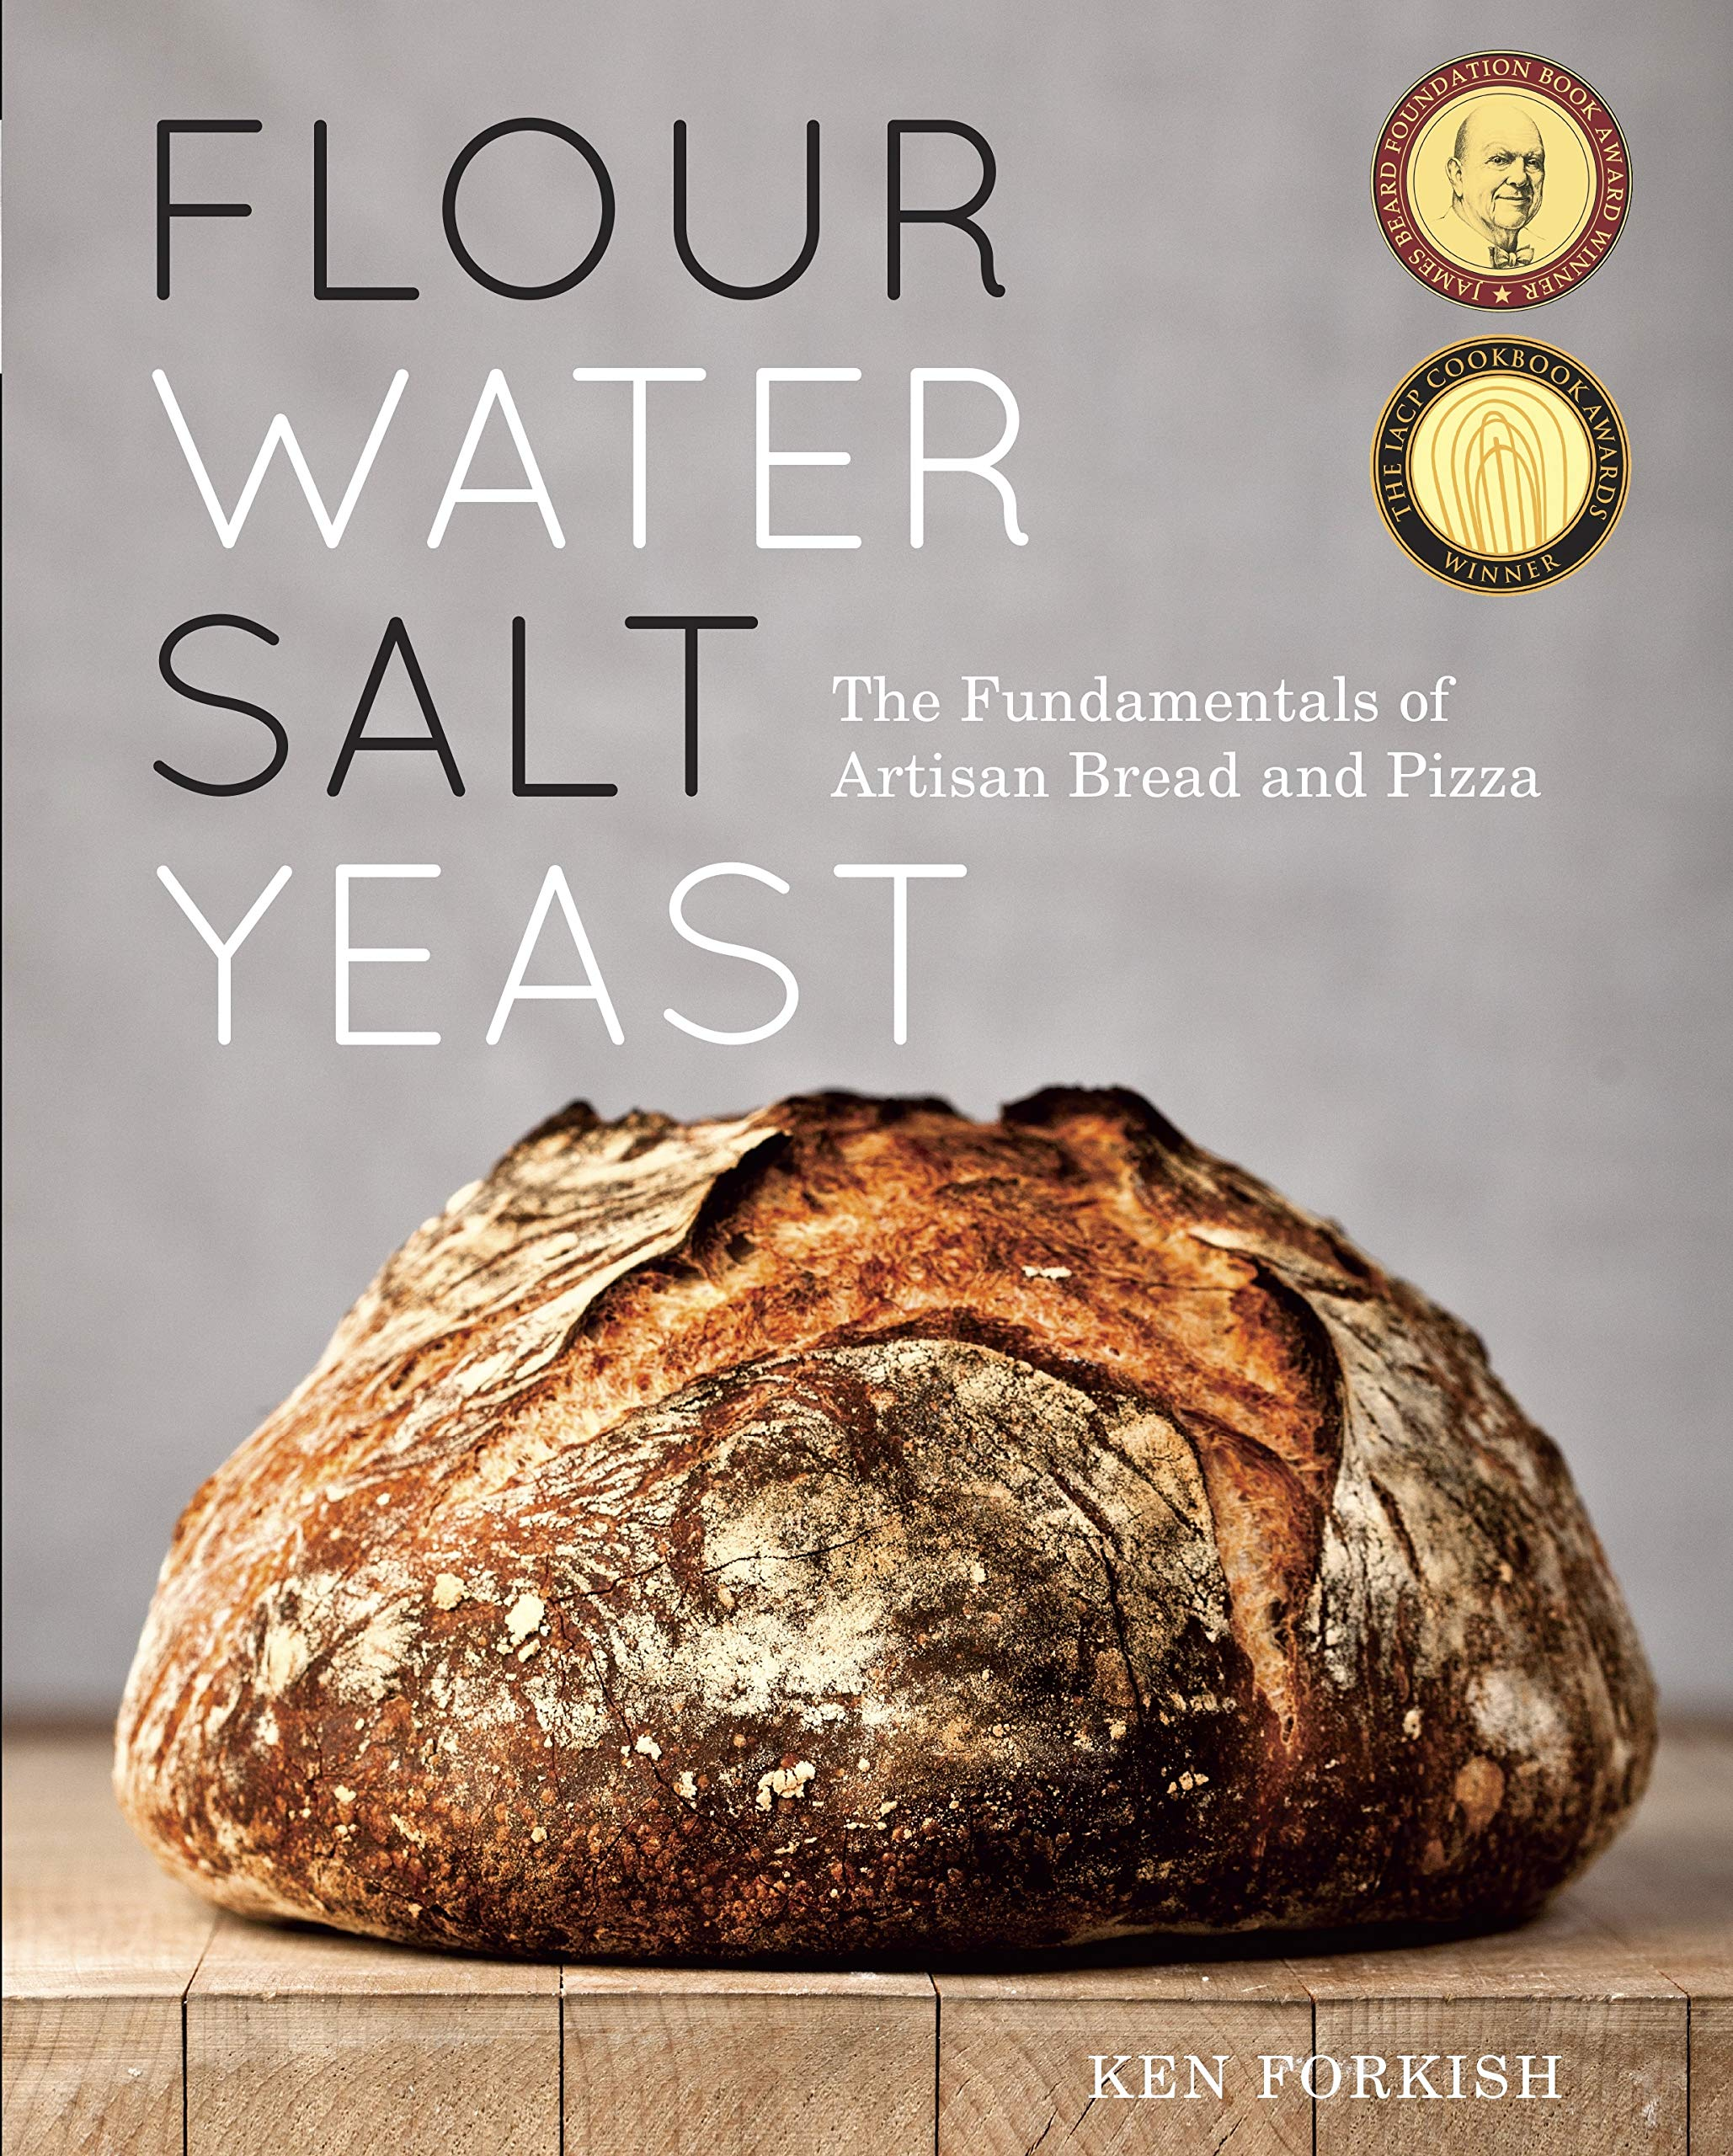 BUY this book: Flour Water Salt Yeast: The Fundamentals of Artisan Bread and Pizza